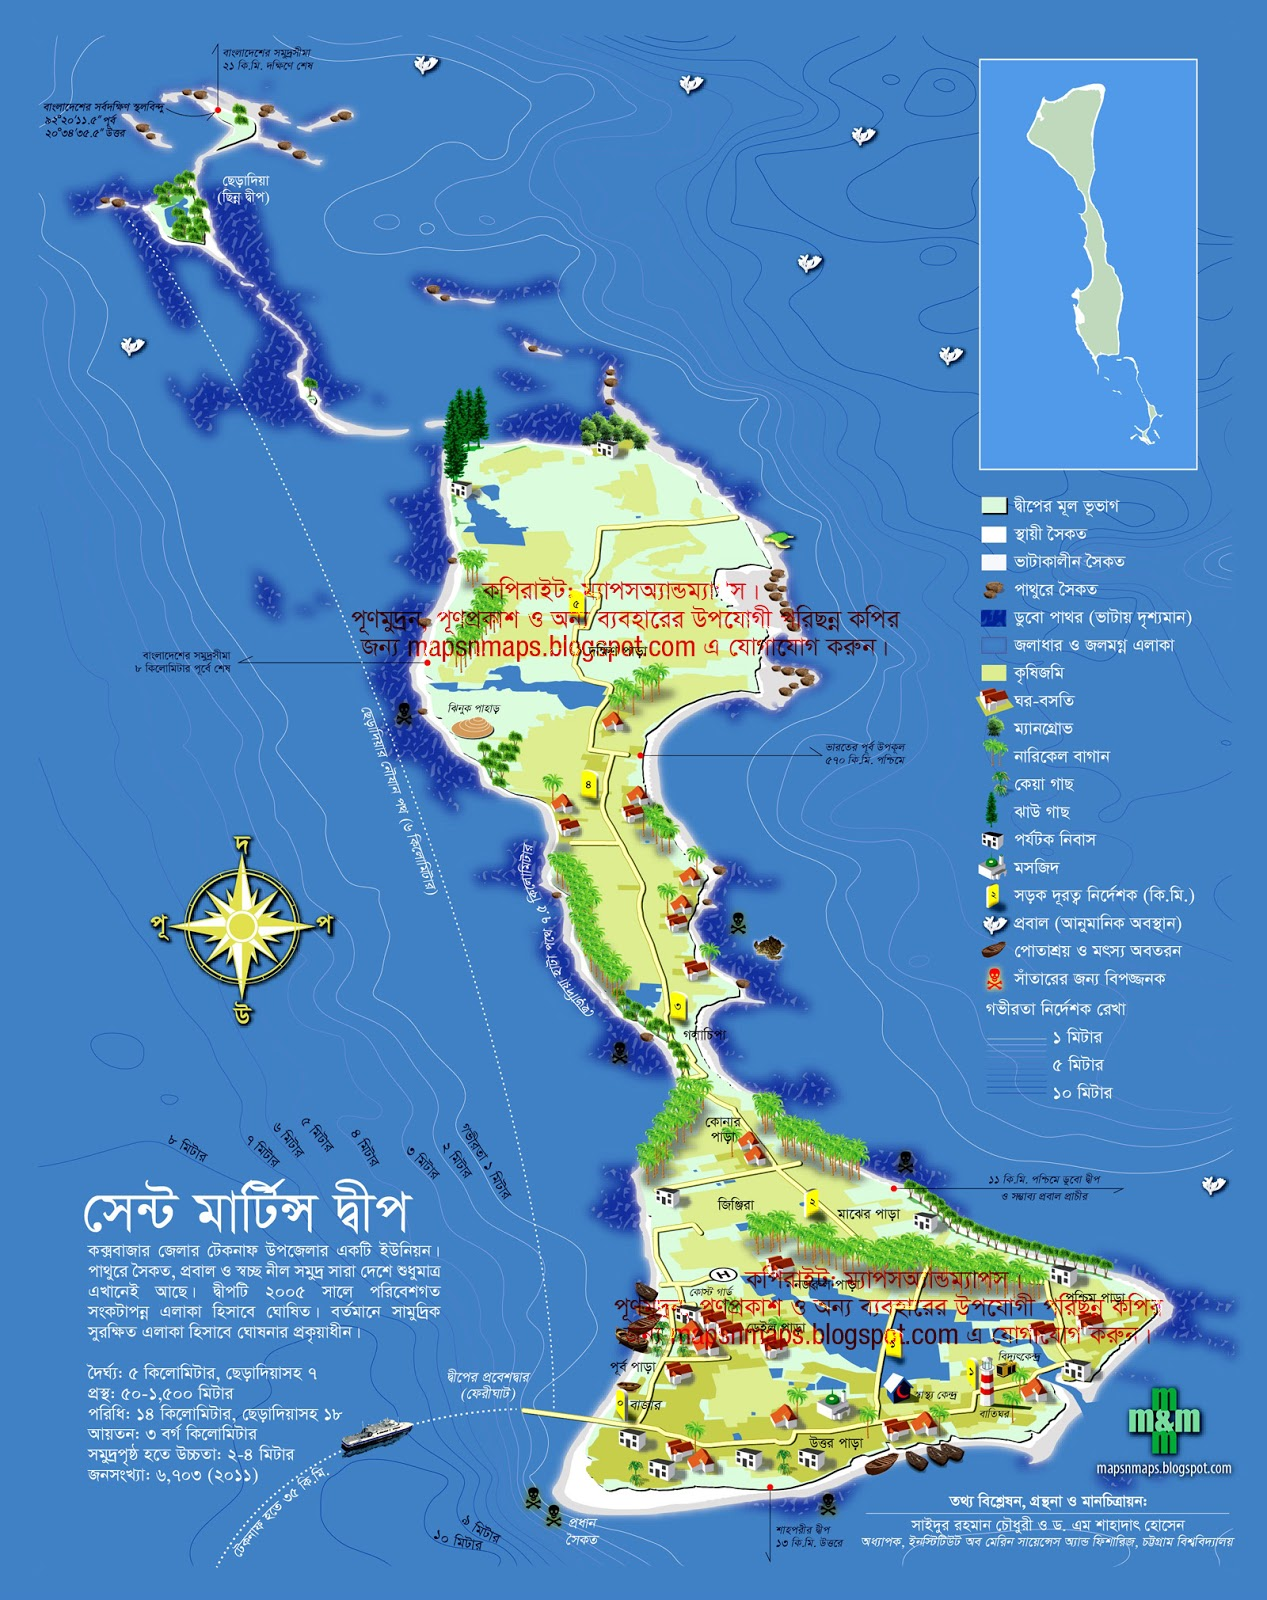 Mapsmaps st martins island bangladesh guide map st martins island bangladesh guide map gumiabroncs Image collections